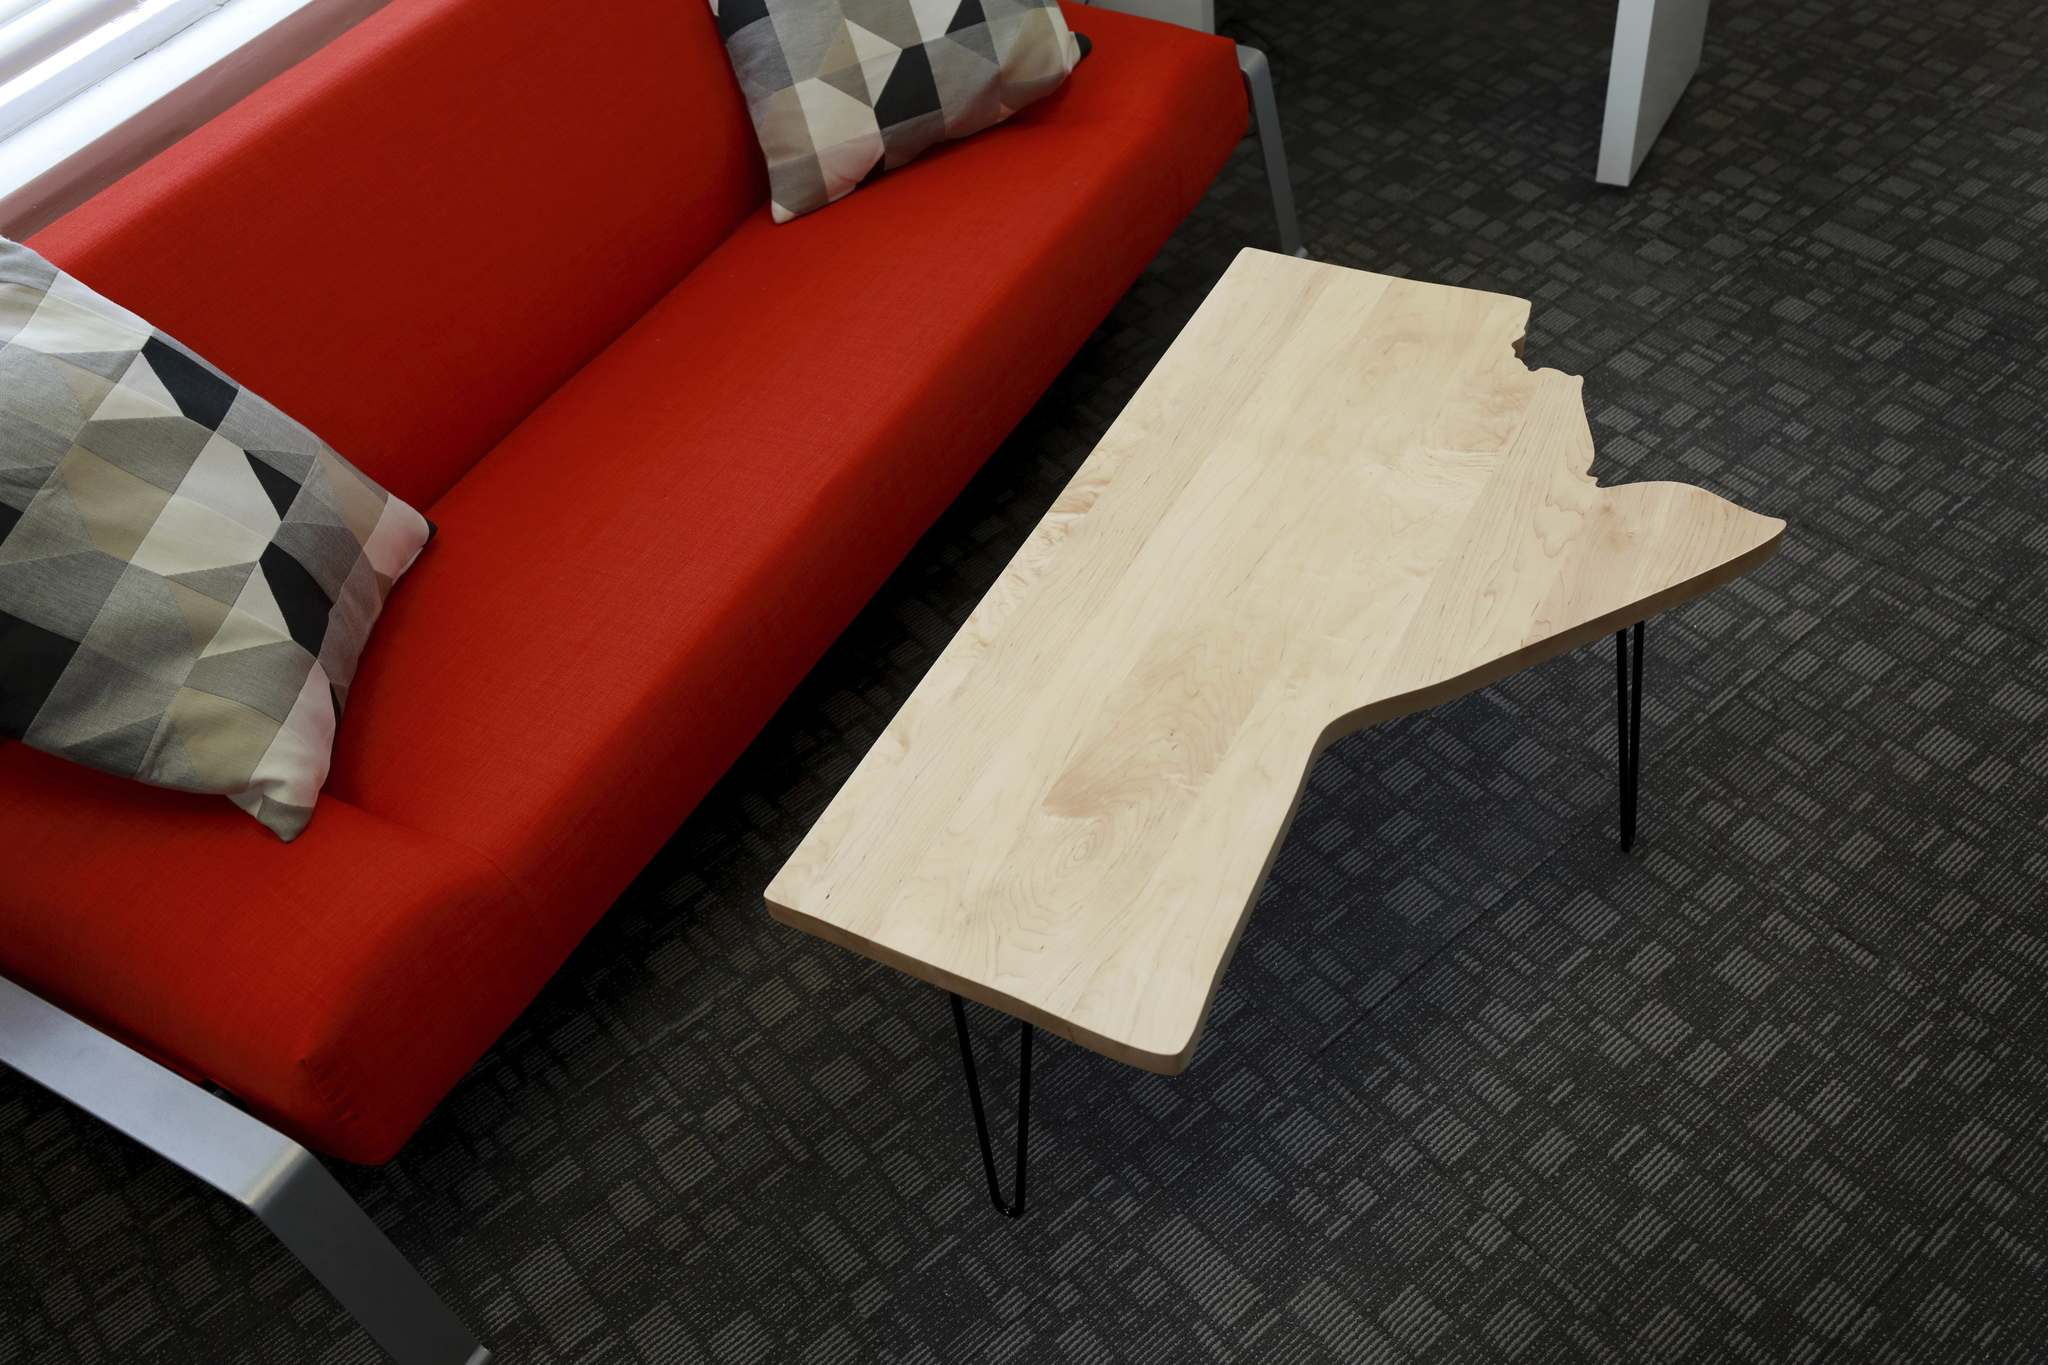 A birch wood table in the shape of Manitoba.